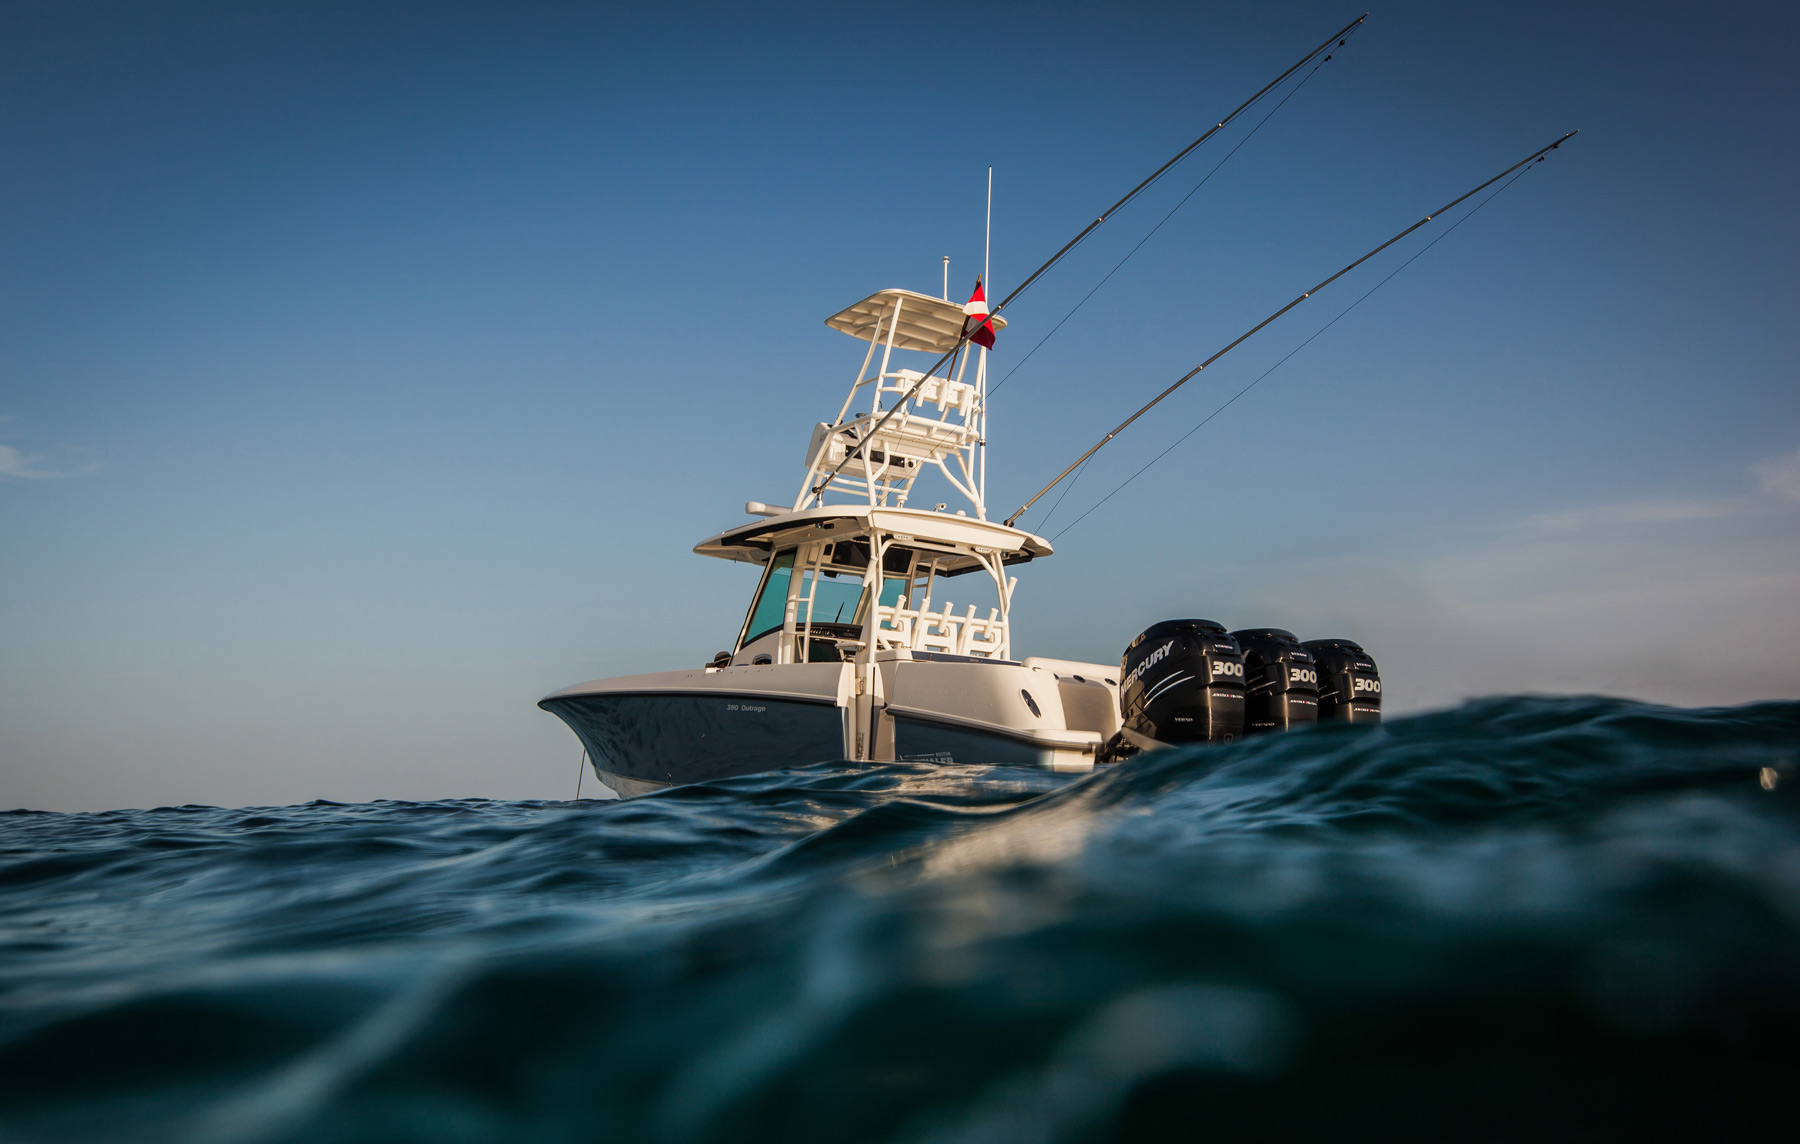 Underwater  Marine Boating Photographer Steinberger